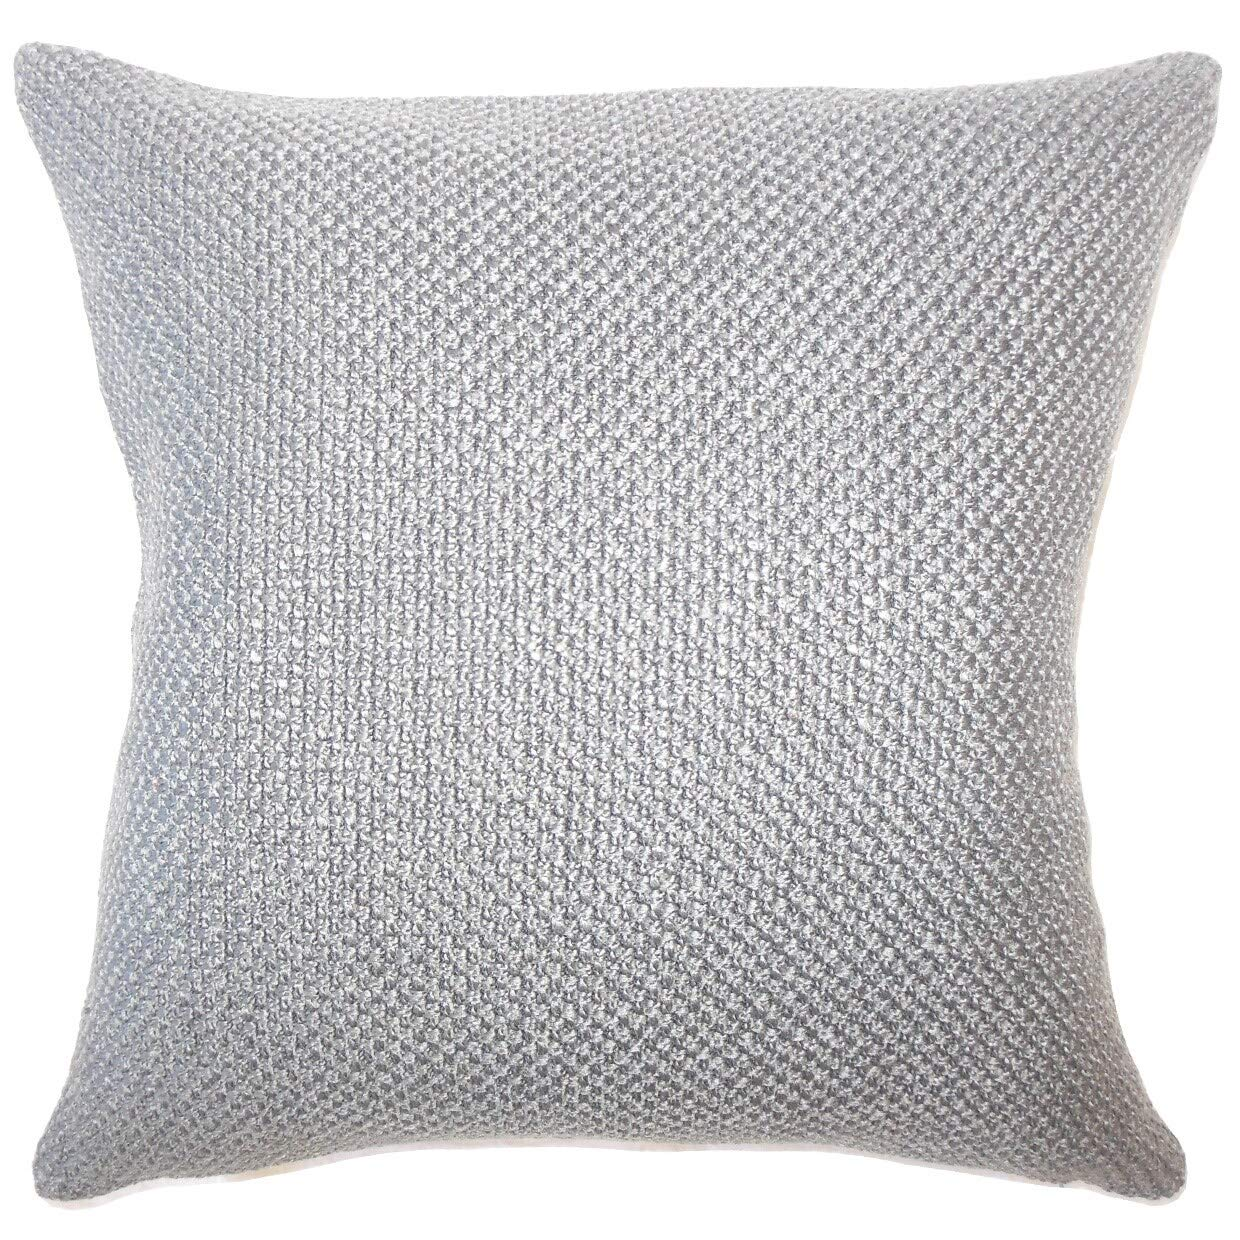 Amazon.com: The Pillow Collection Xabier - Almohada rellena ...